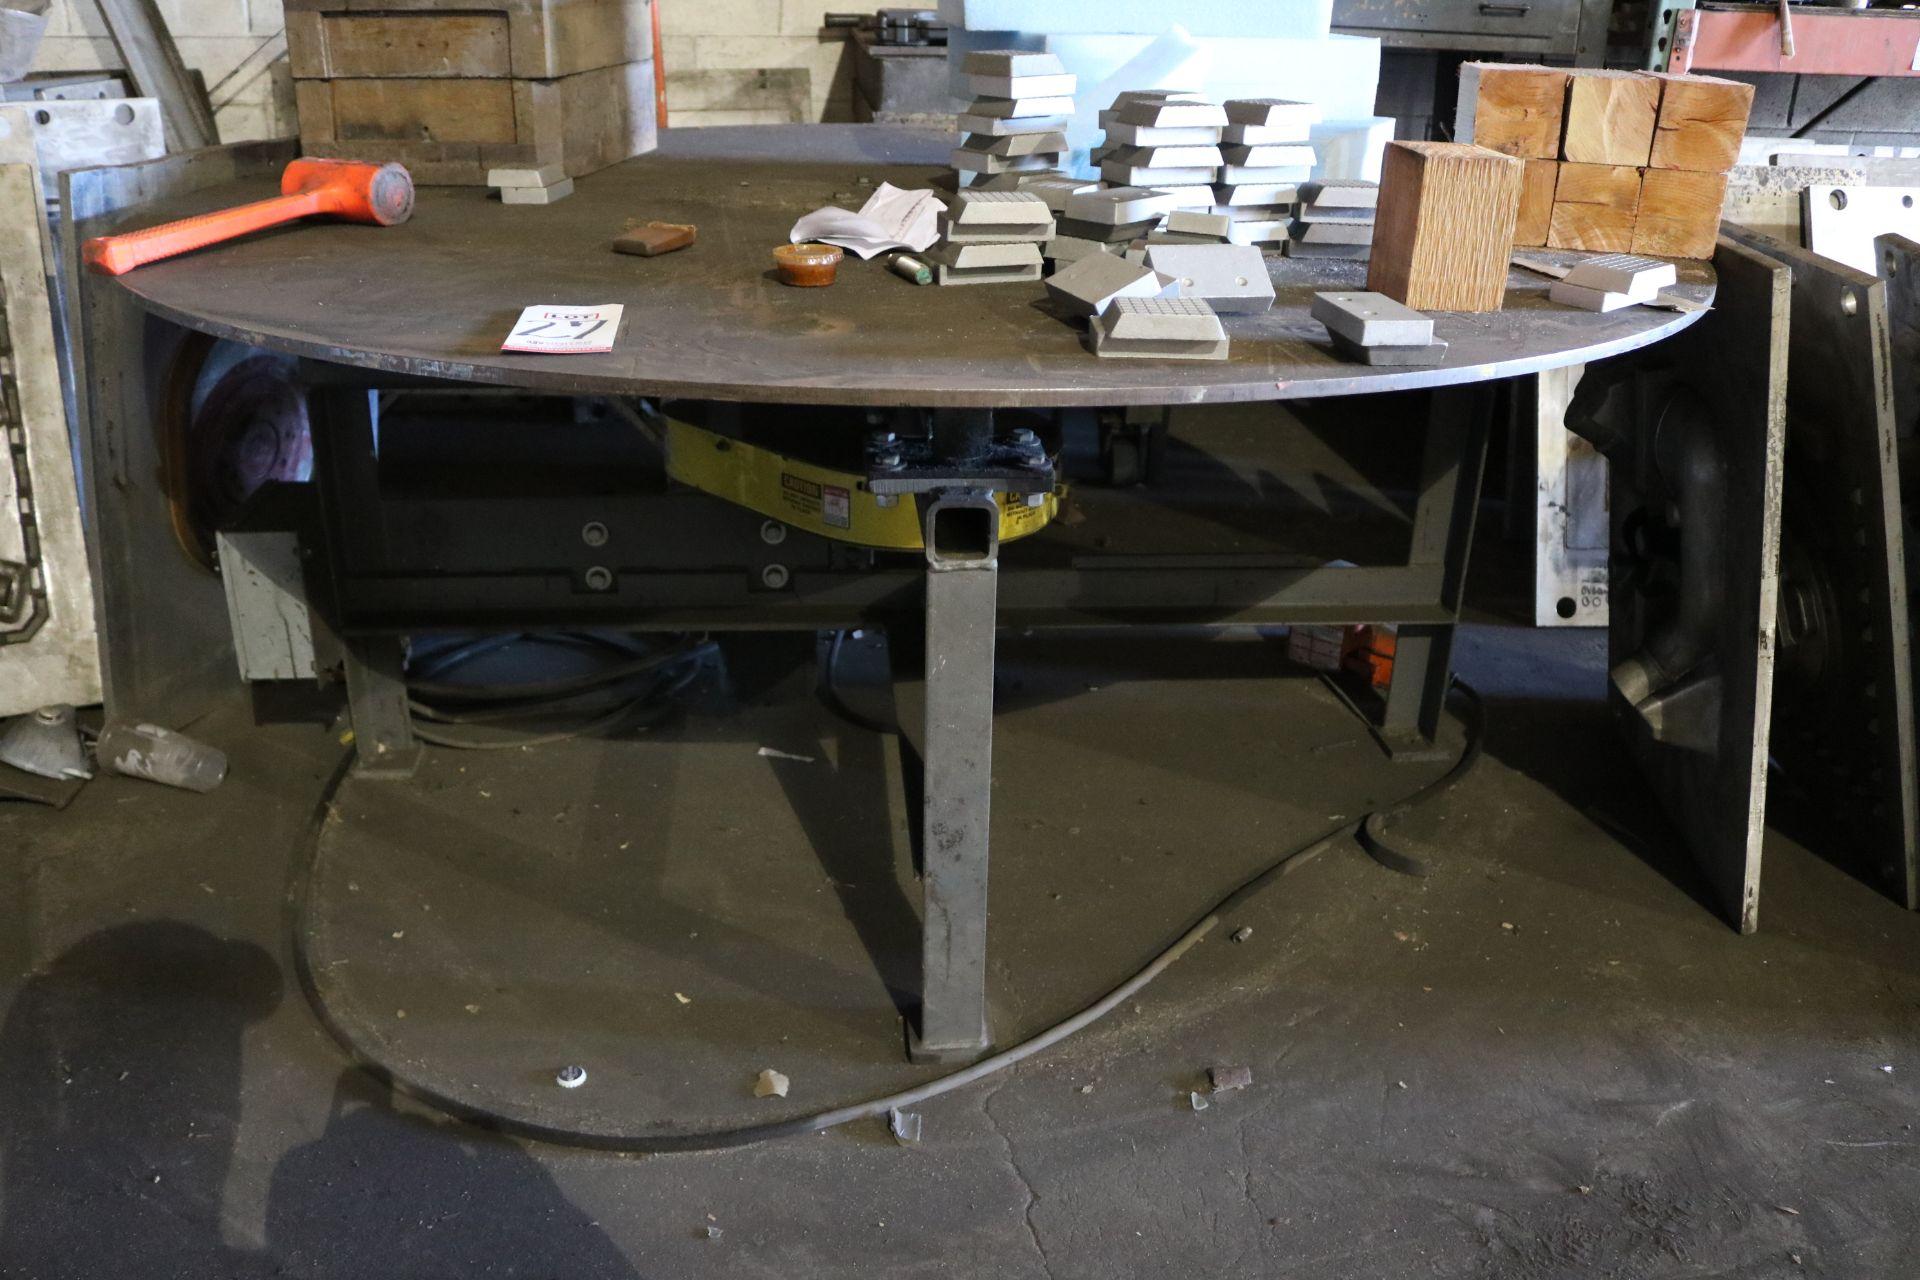 Lot 27 - 2005 PALMER 6' DIAMETER 3/4 HP ROTARY TABLE, FOOT PEDAL OPERATION, S/N CF191